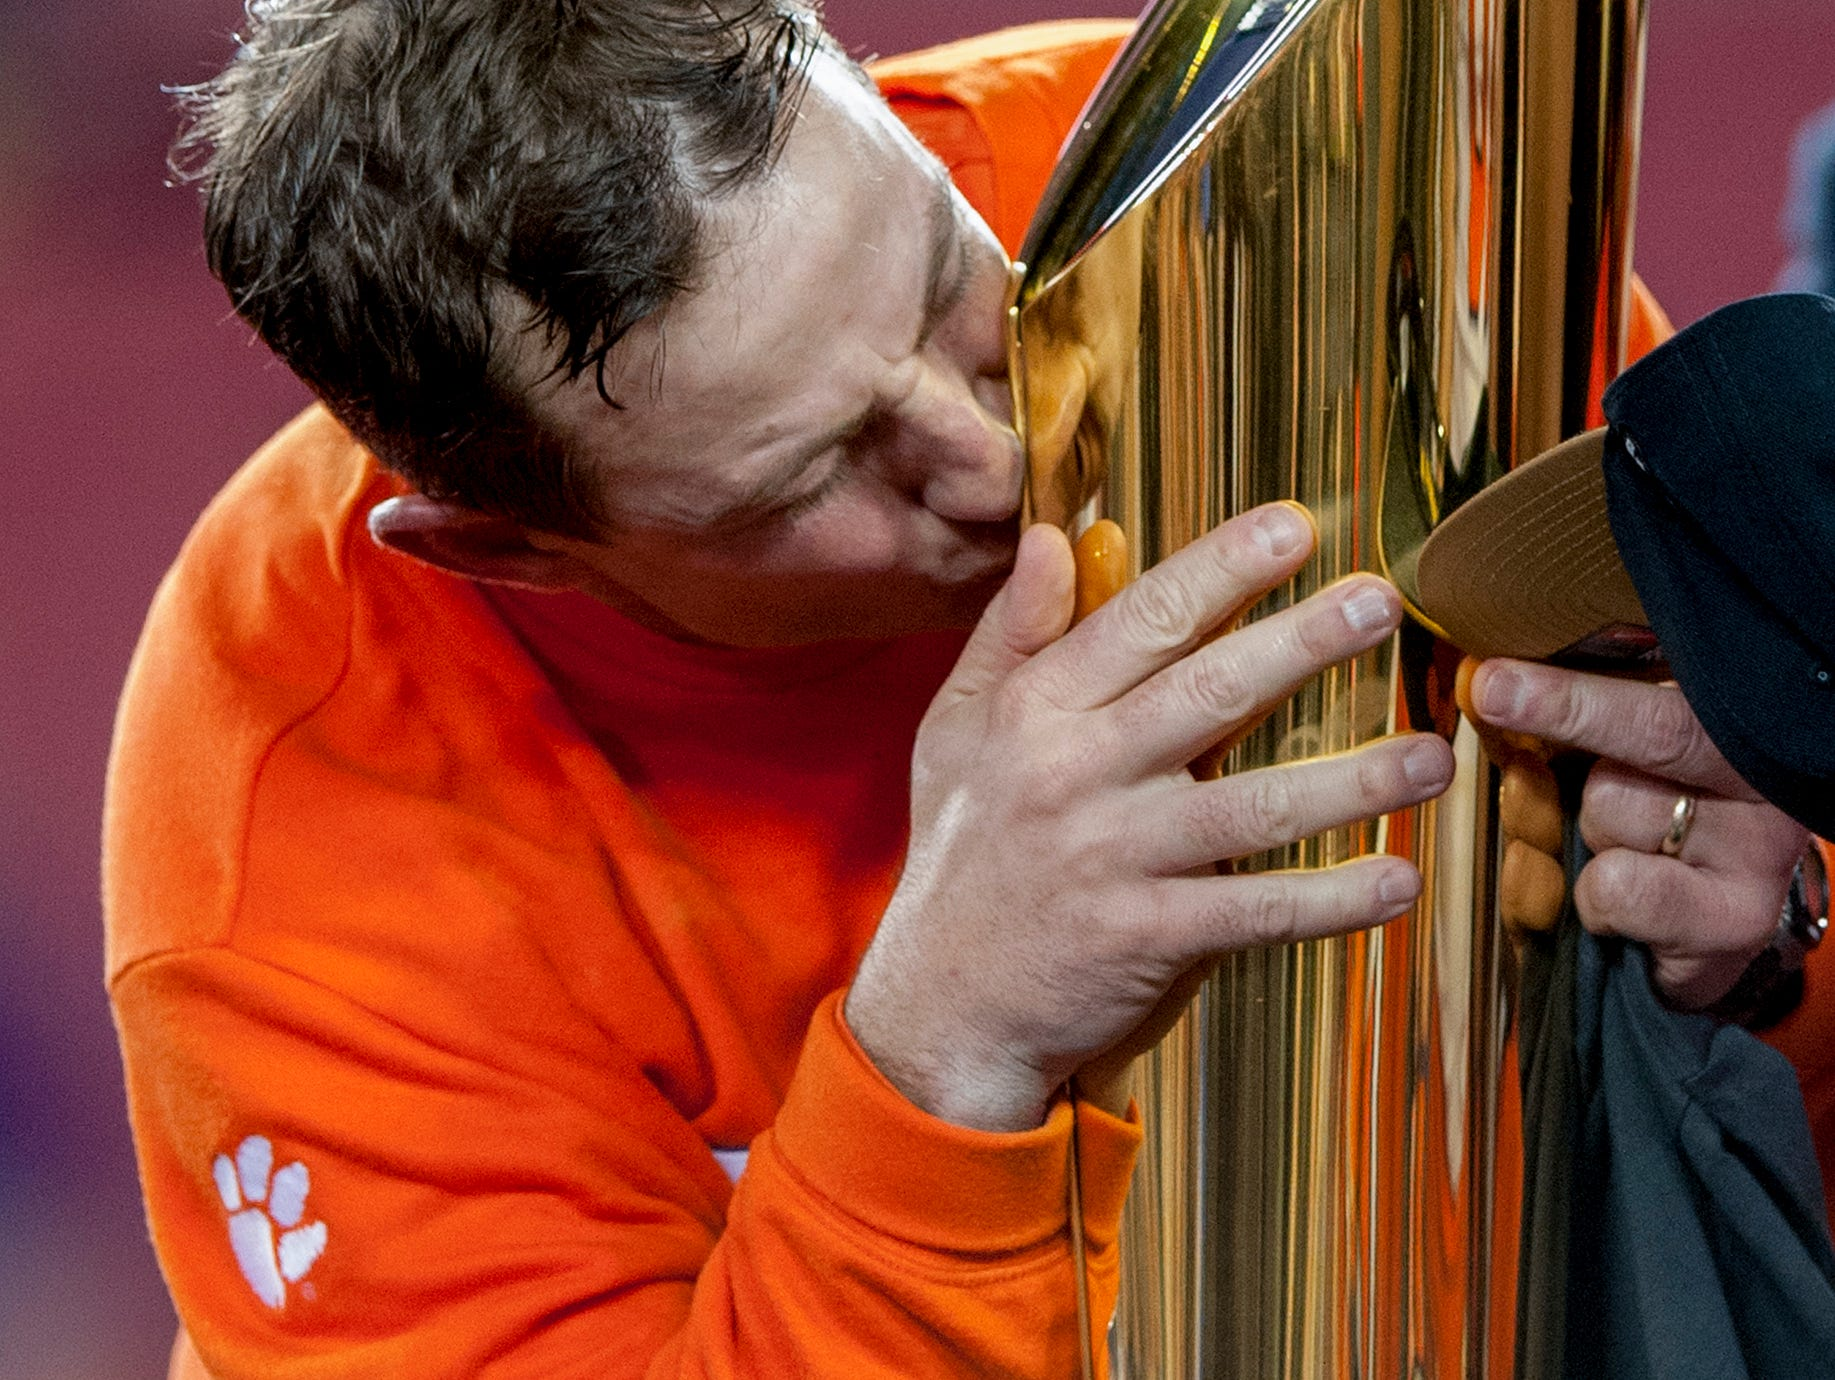 Clemson head coach Dabo Swinney kisses the National Championship Trophy after defeating Alabama in the College Football Playoff National Championship Game at Raymond James Stadium in Tampa, Fla. on Monday January 9, 2017.